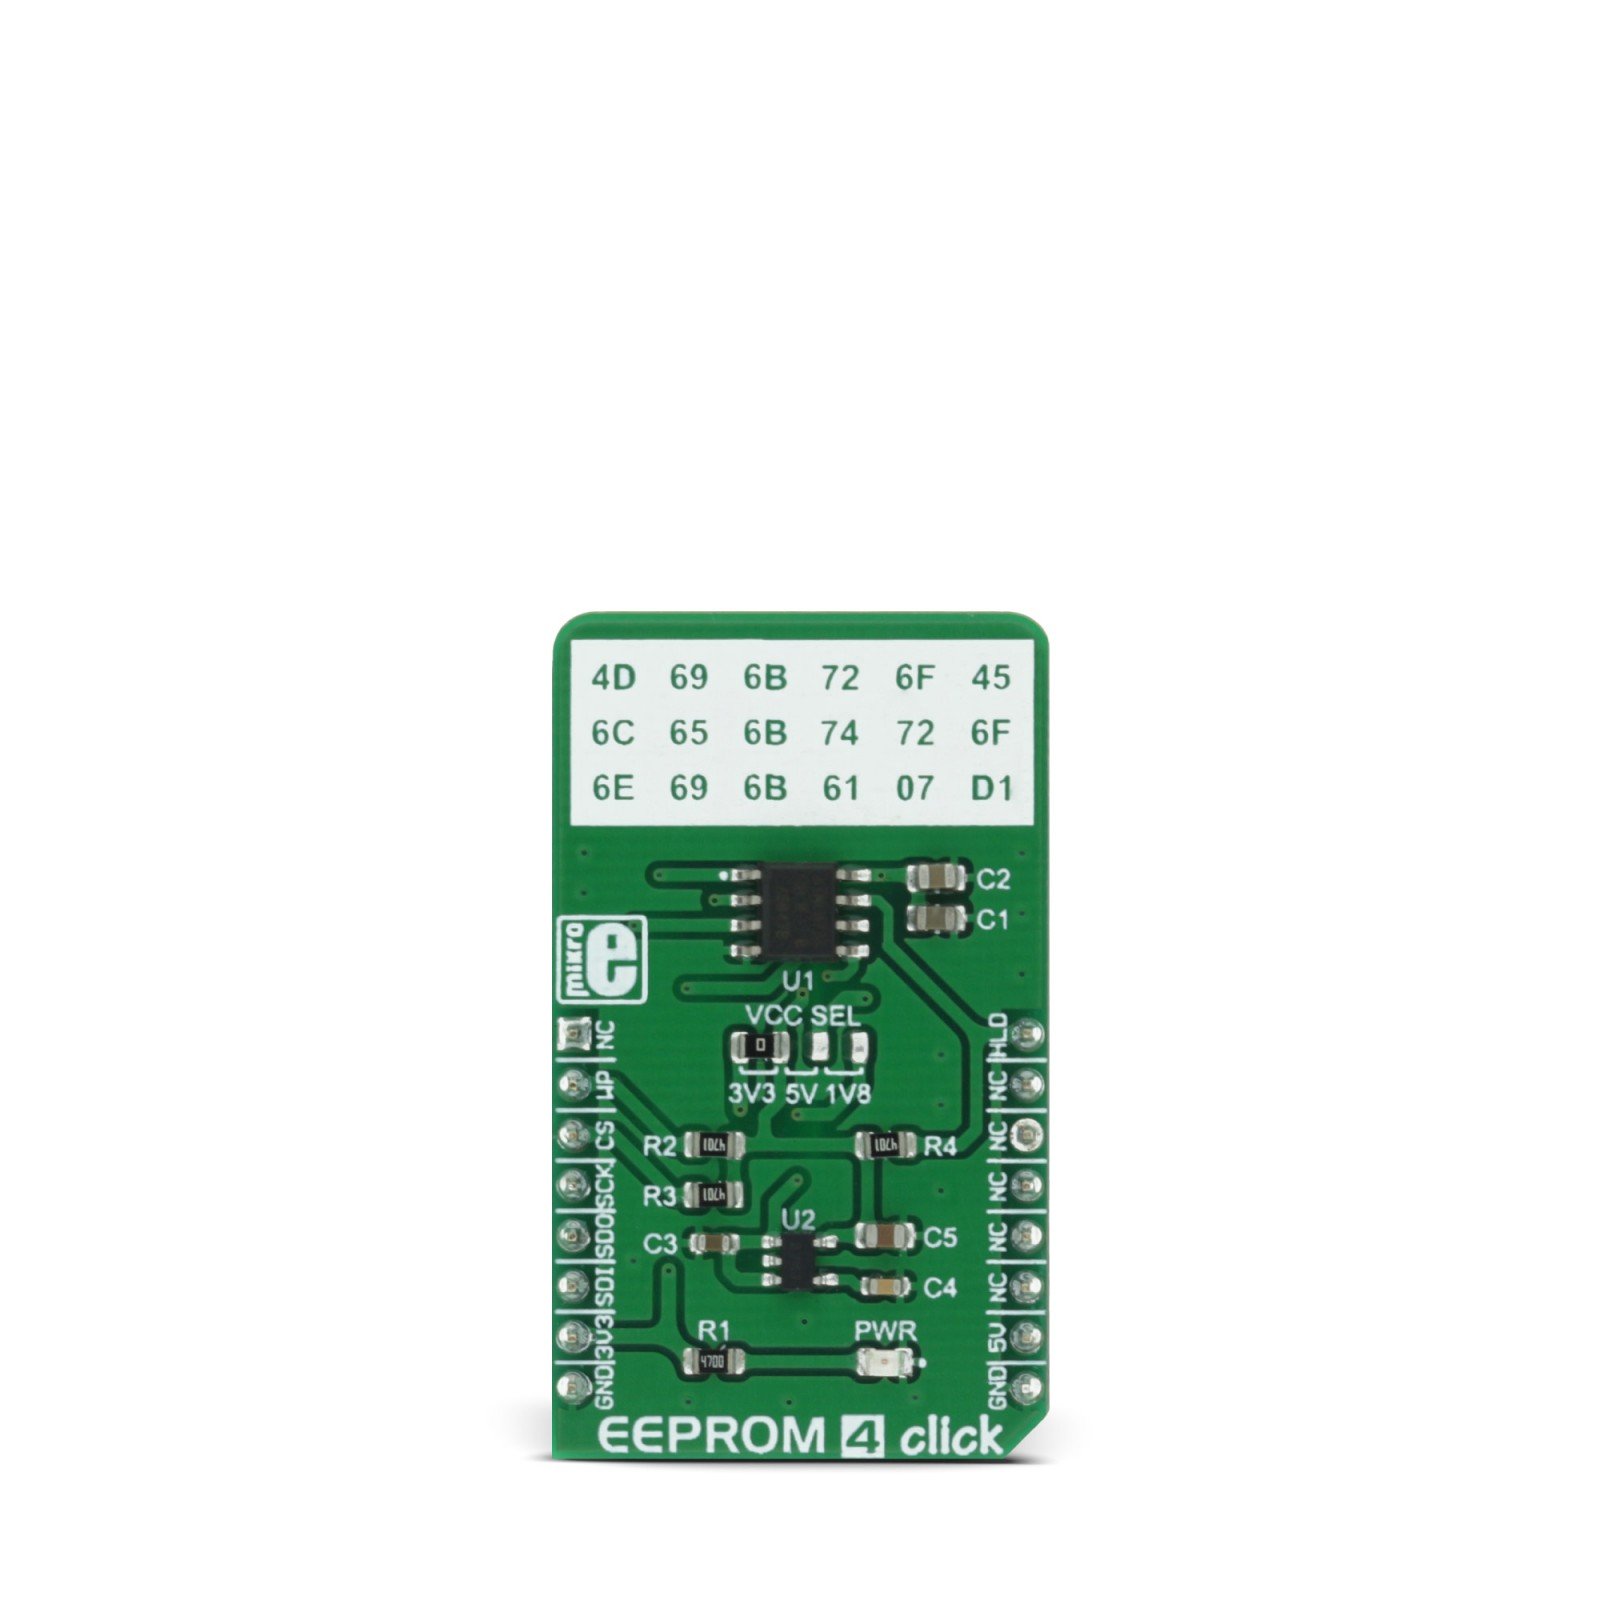 EEPROM 4 click - board with 256 KB of EEPROM | MikroElektronika